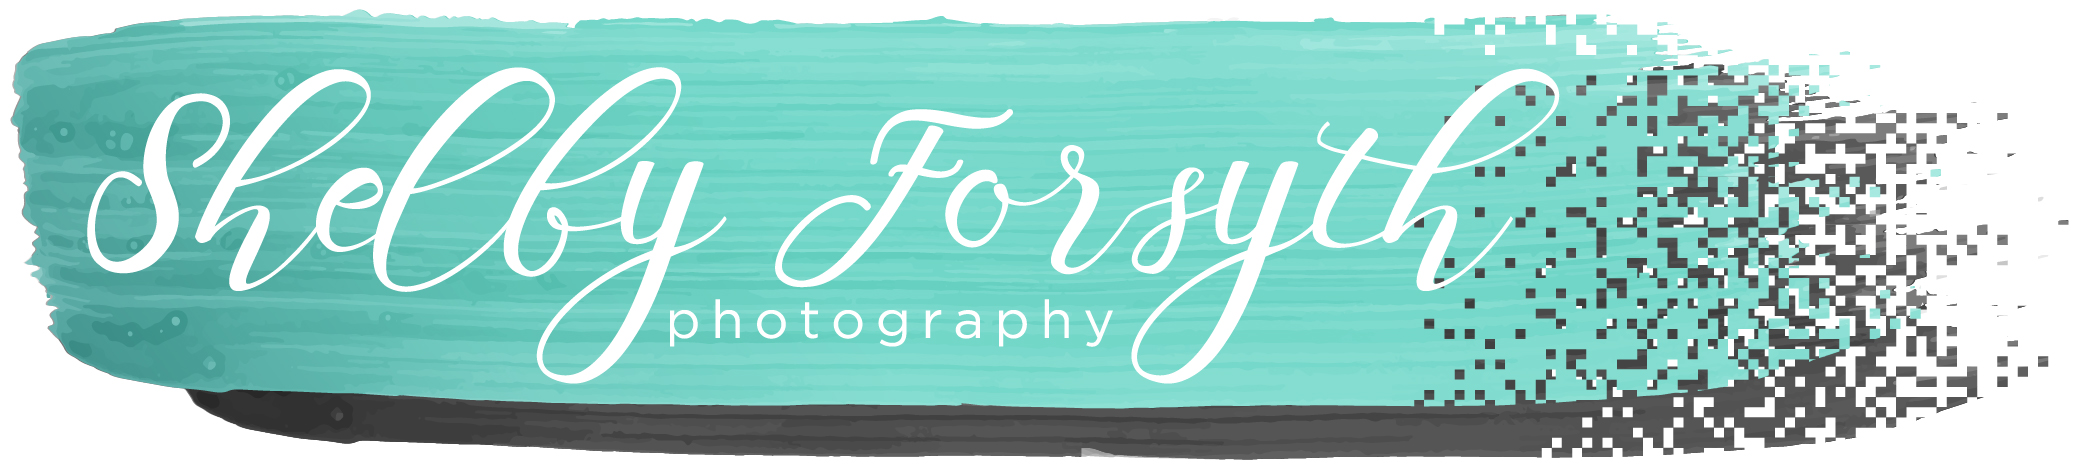 Shelby Forsyth Photography Logo Full Plain Large